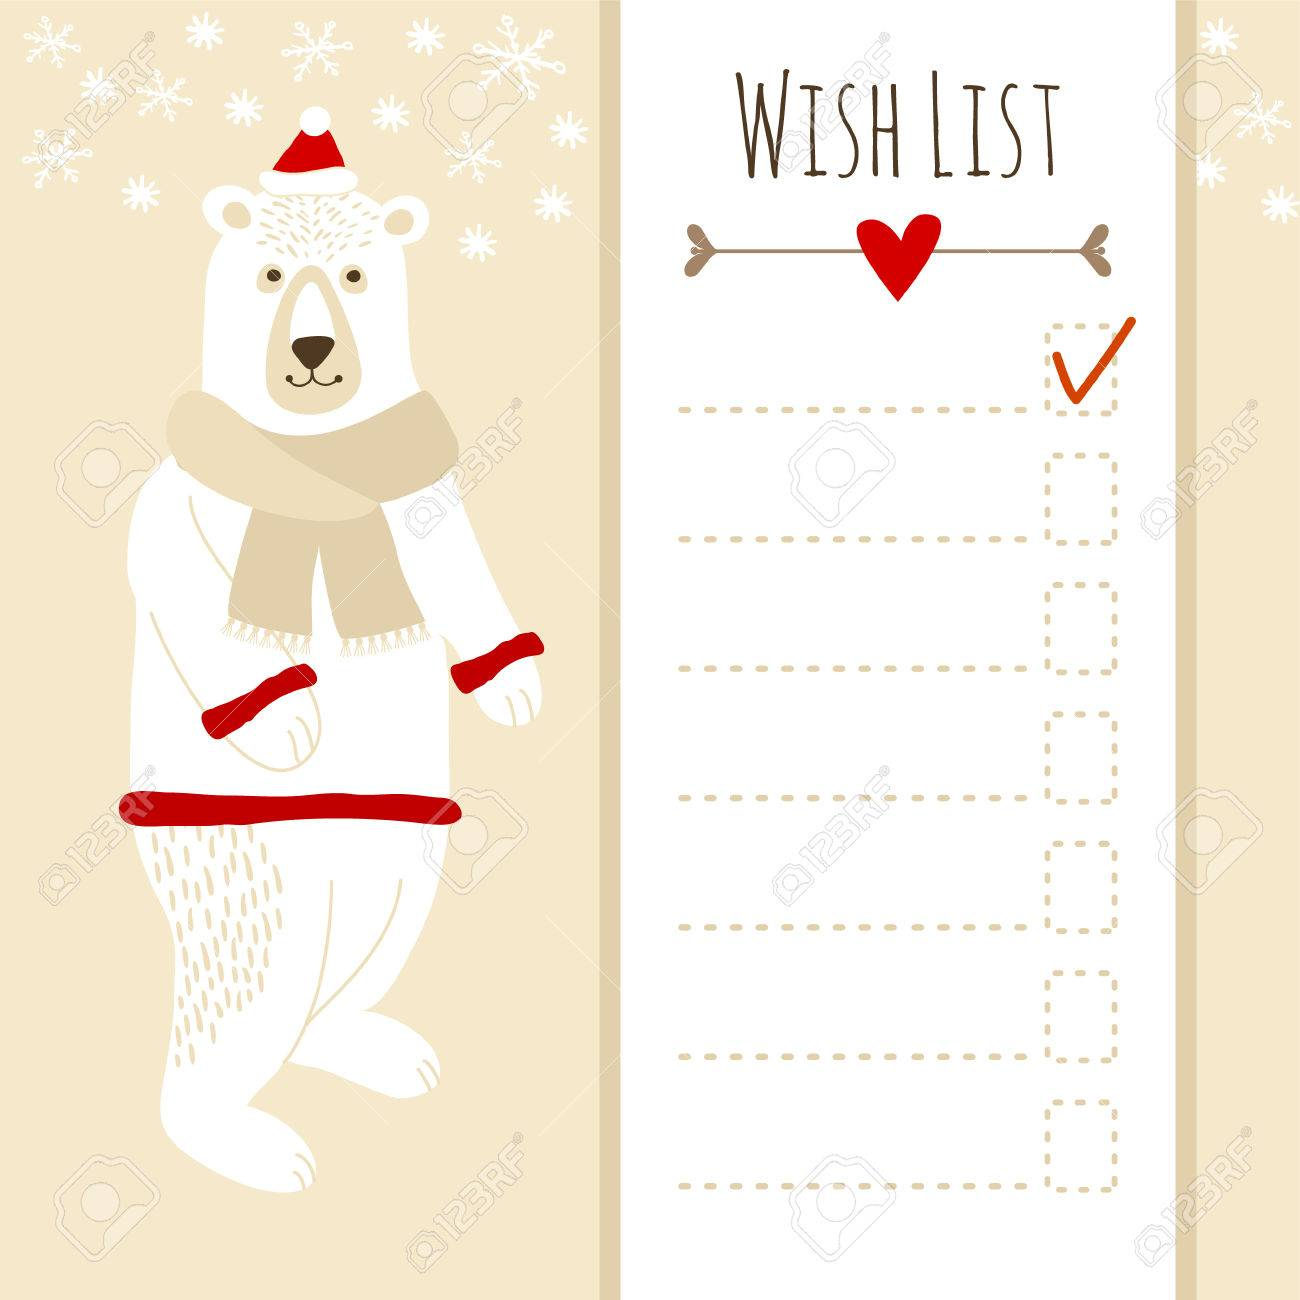 Cute Christmas Card Or Baby Shower Wish List With Polar Bear Stock Vector    32612282